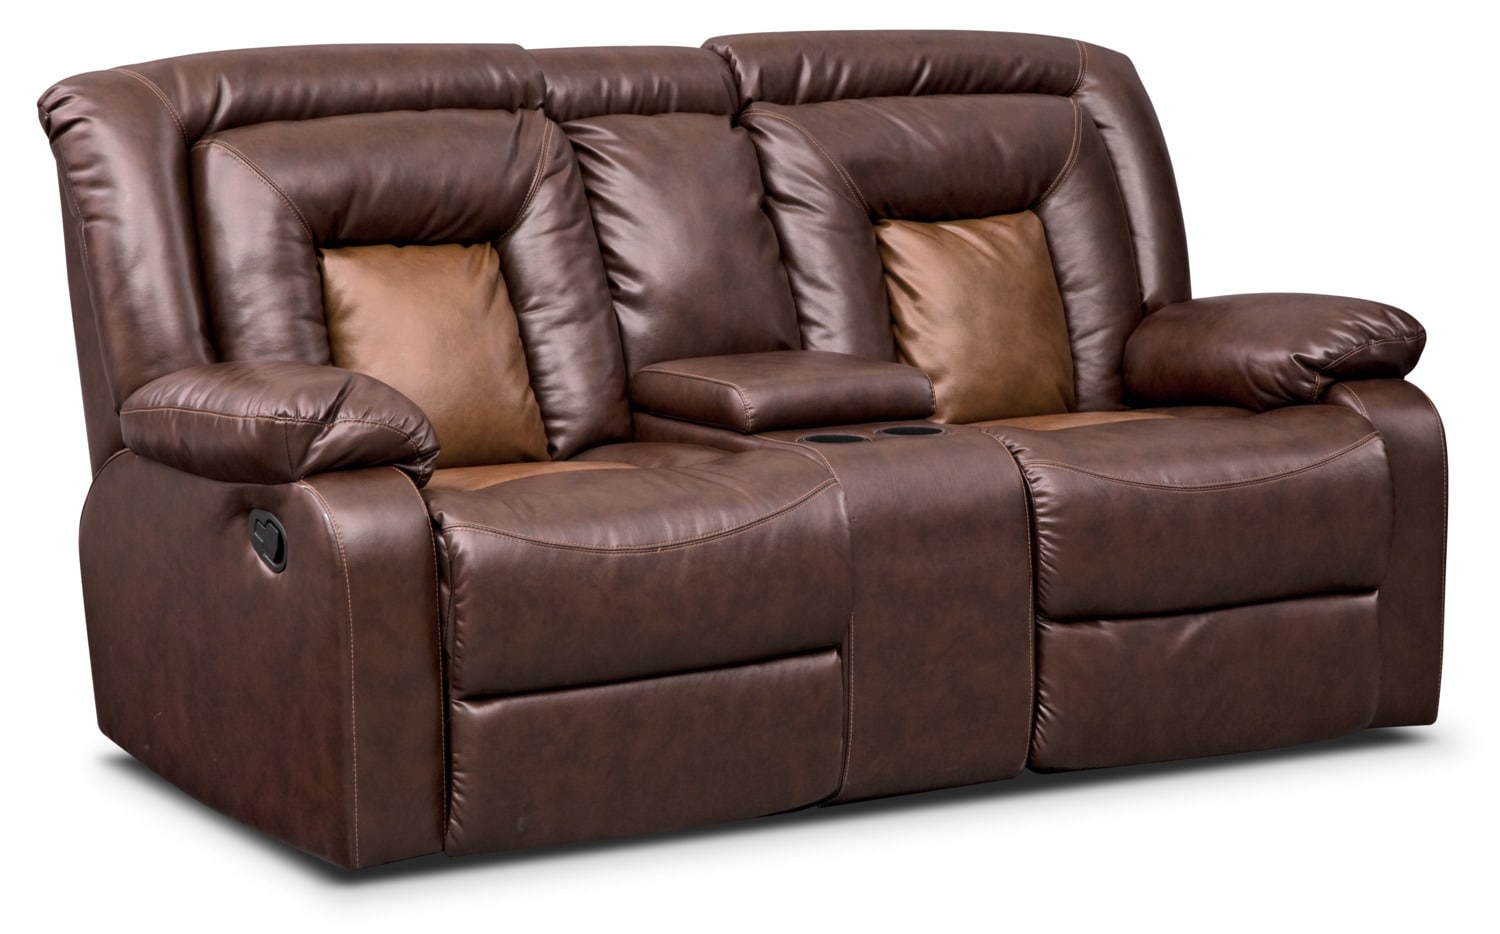 Nice Living Room Furniture   Mustang Dual Reclining Loveseat With Console   Brown